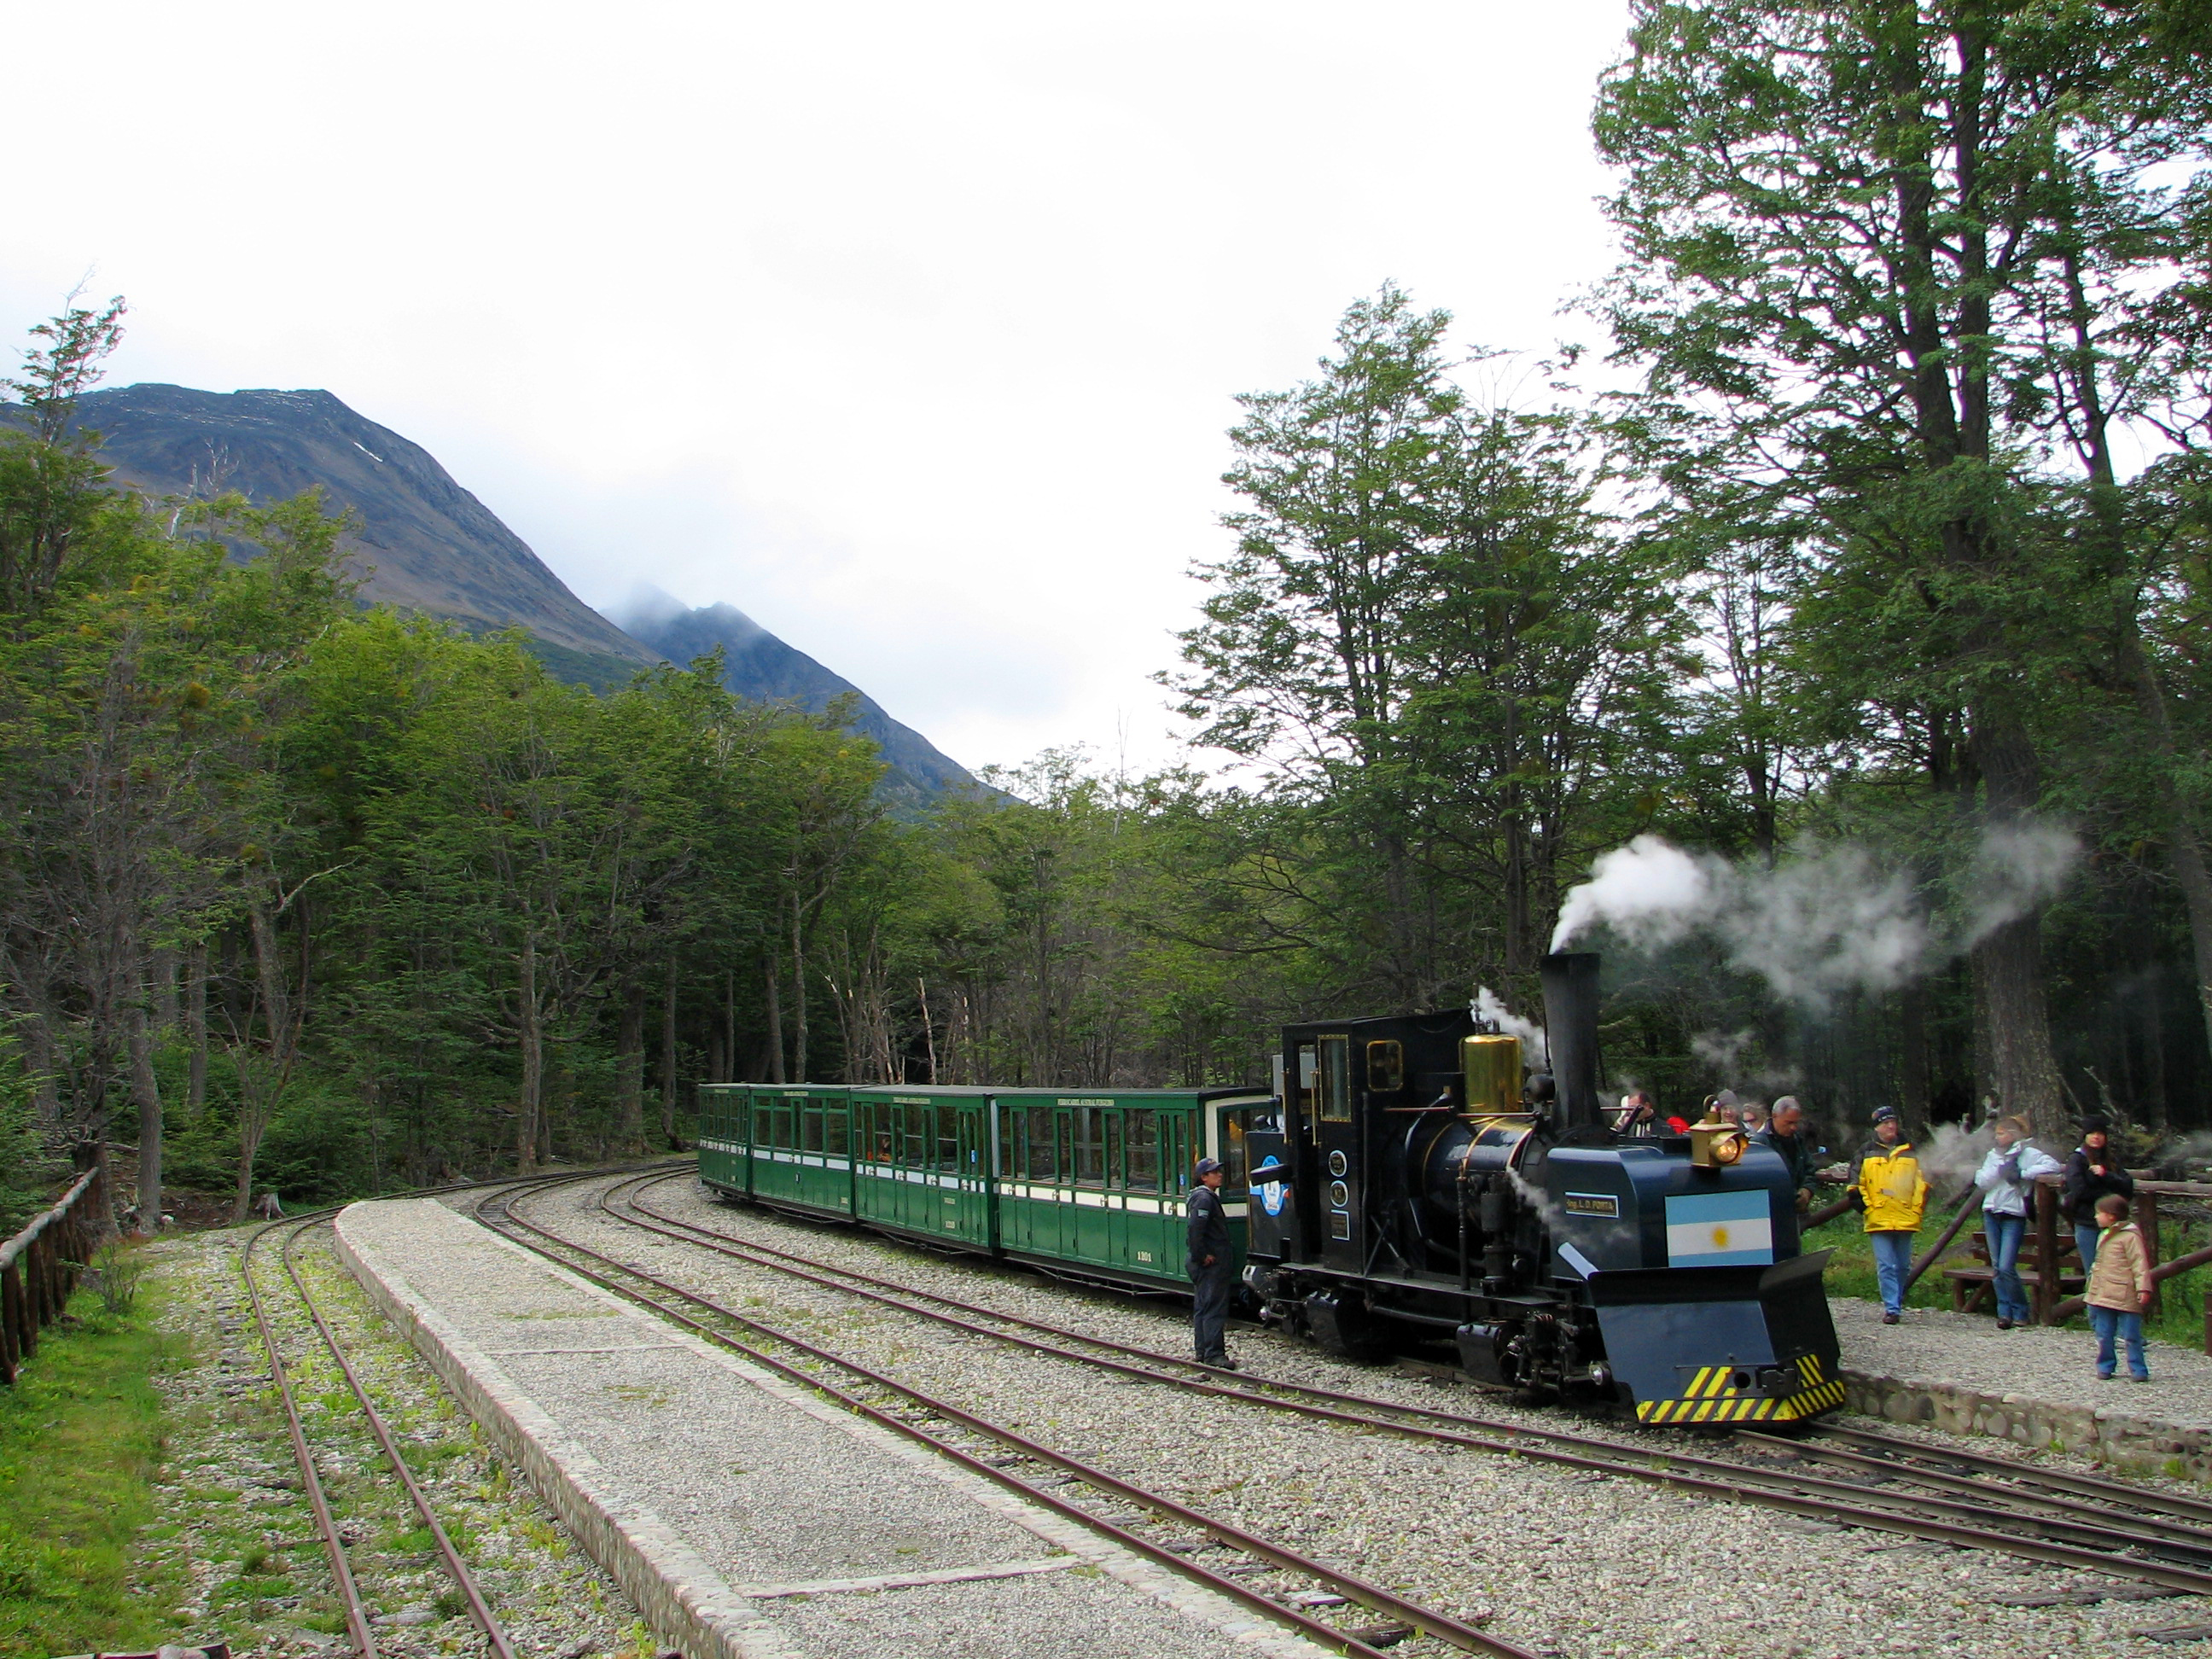 File:End of The World Train at station.jpg - Wikimedia Commons